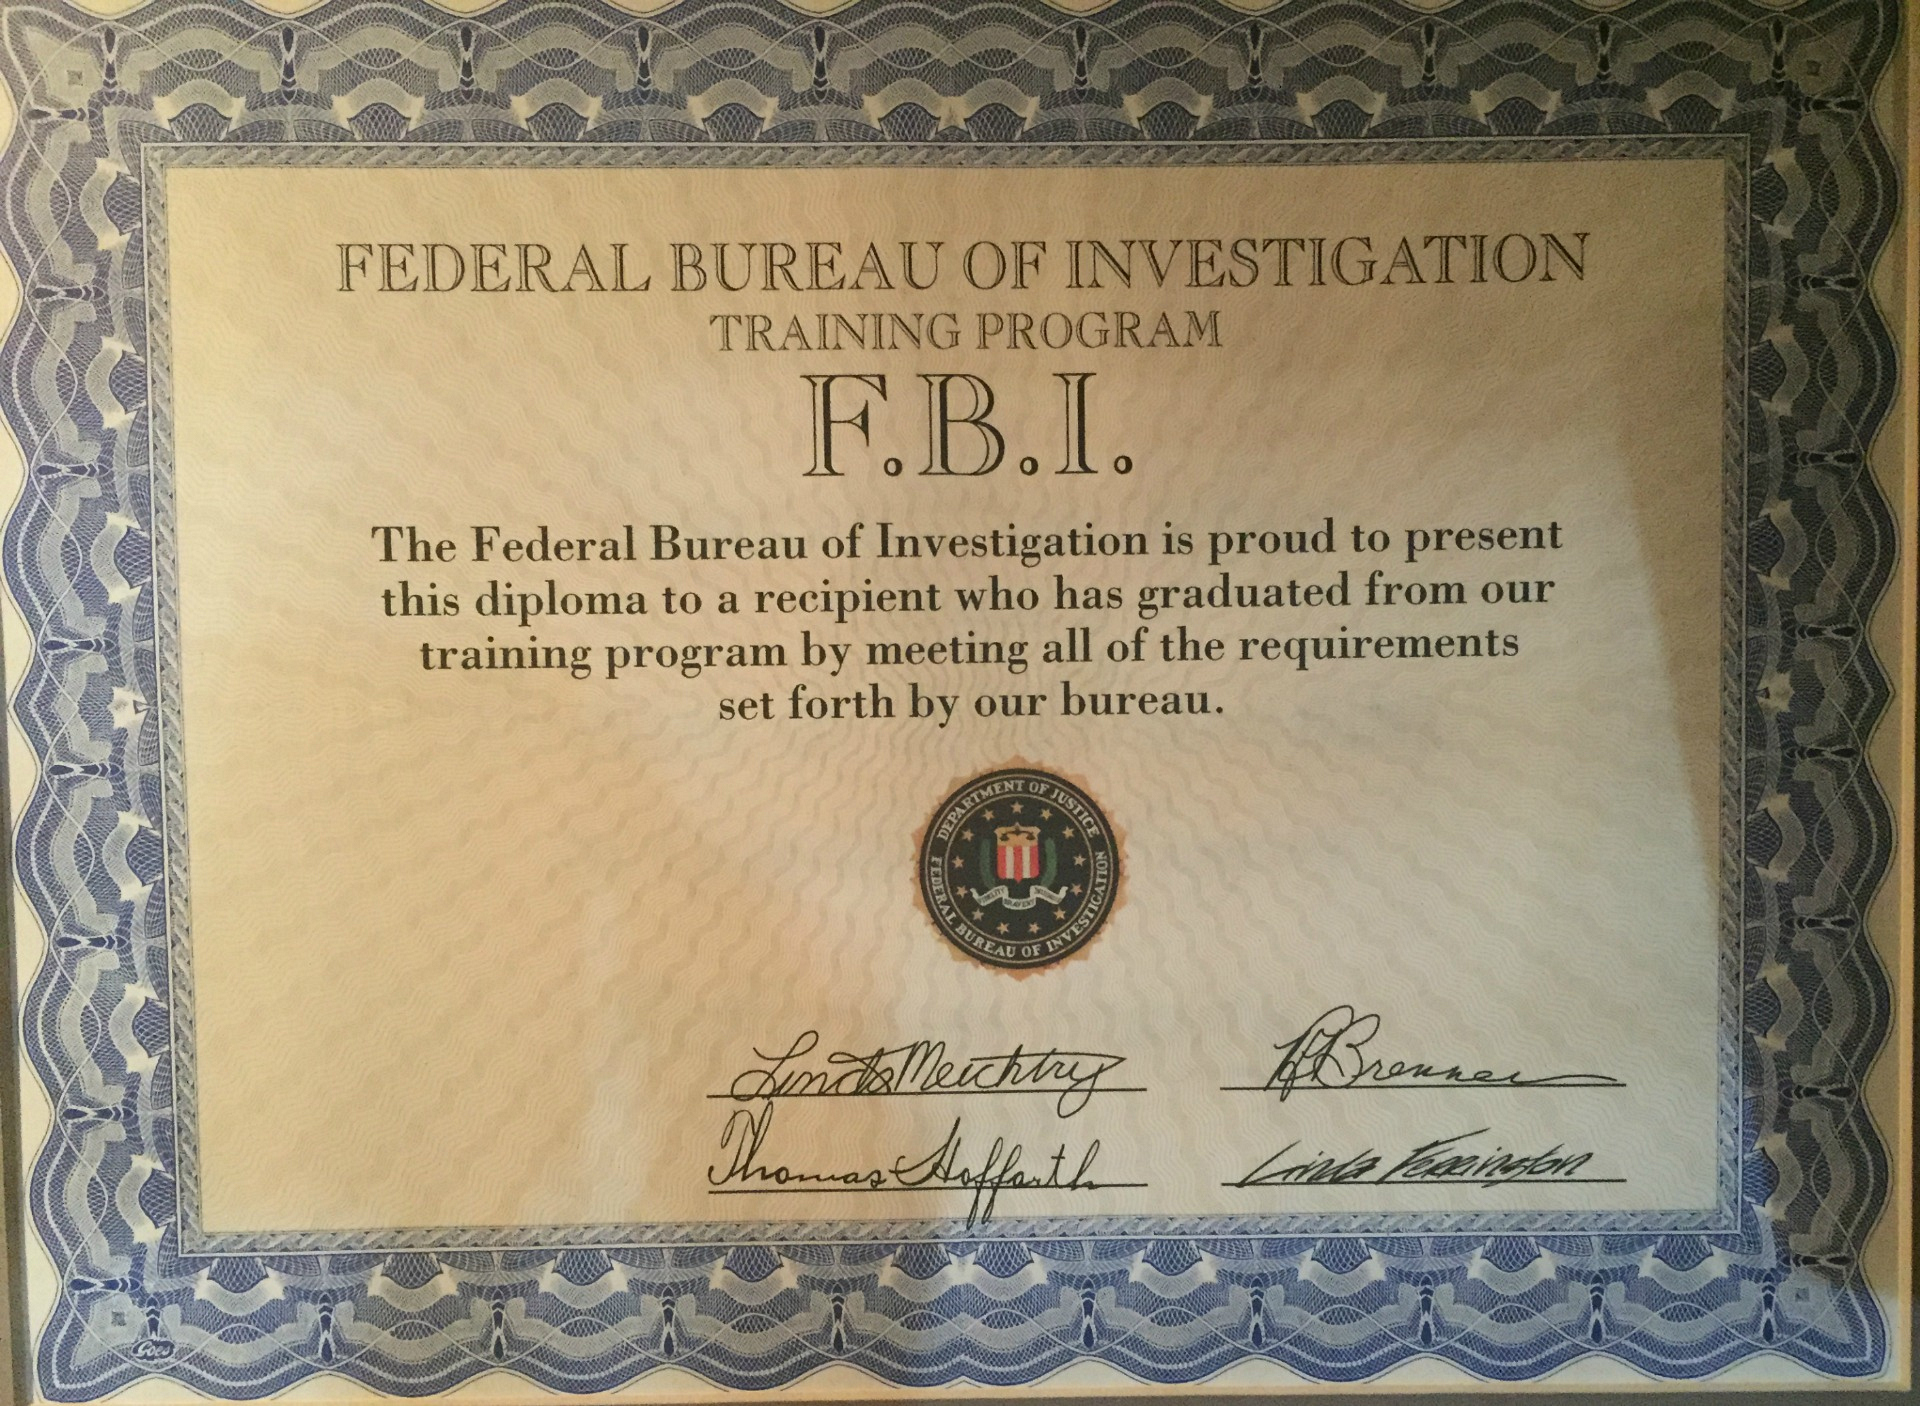 Welcome to the Federal Bureau of Investigation